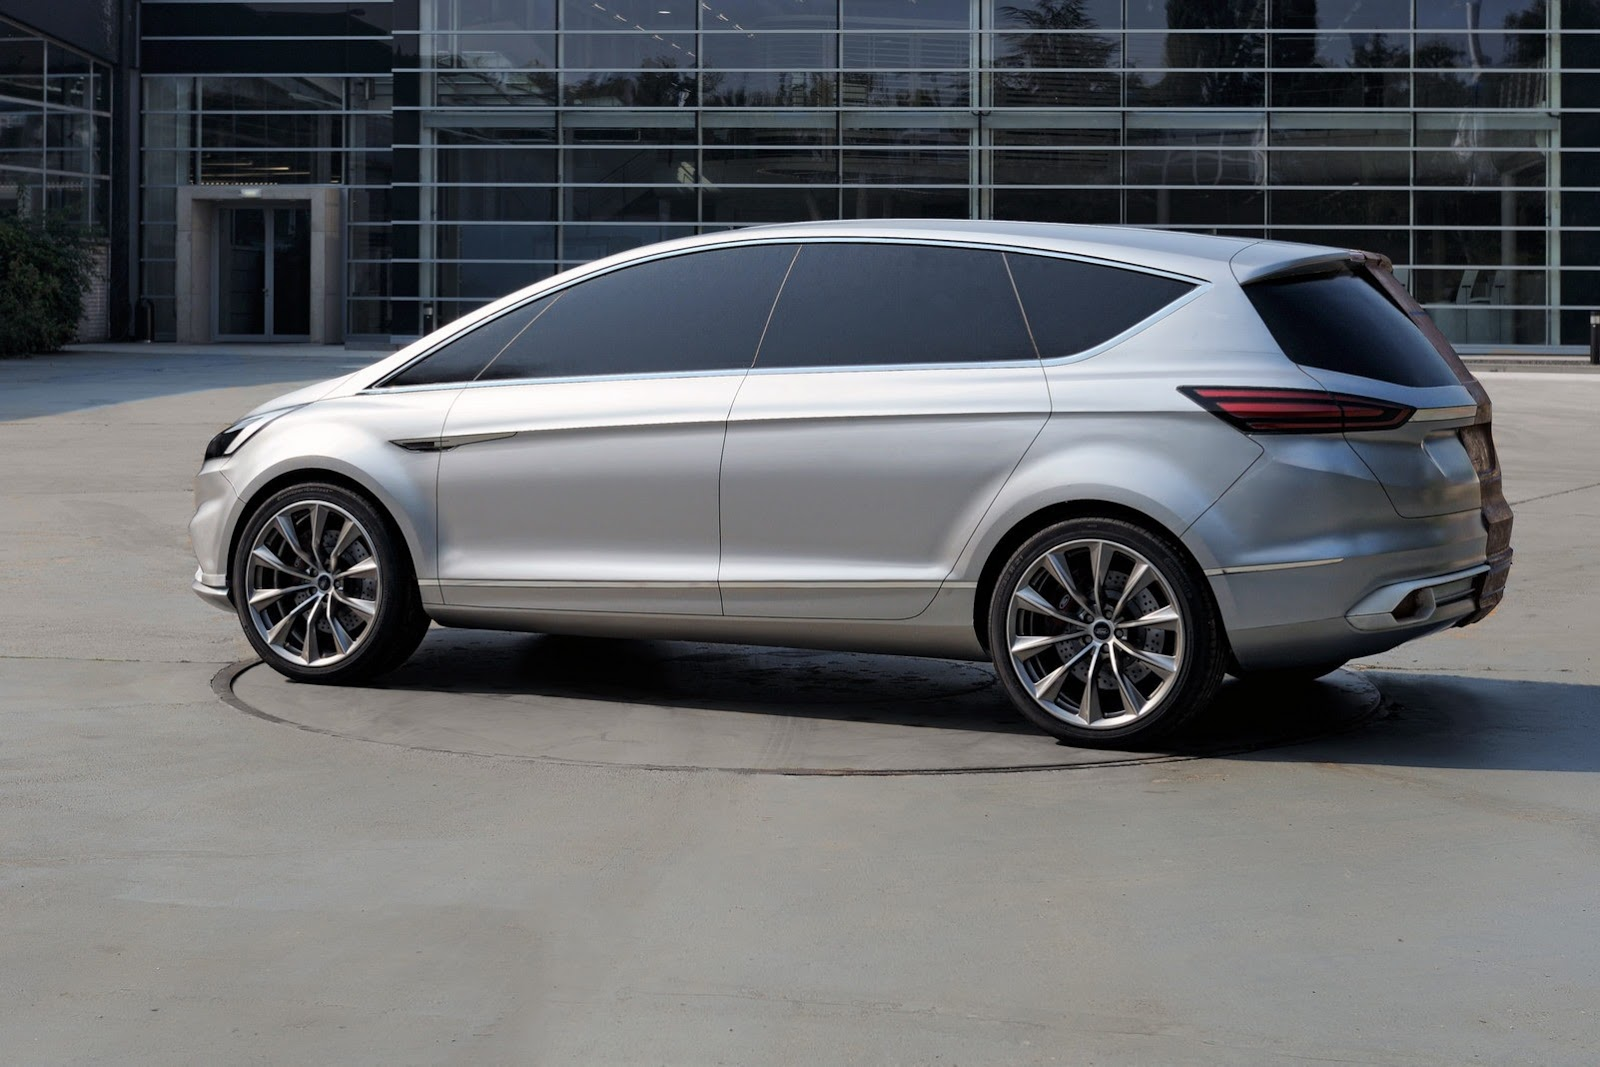 2019 Ford B MAX Concept photo - 5